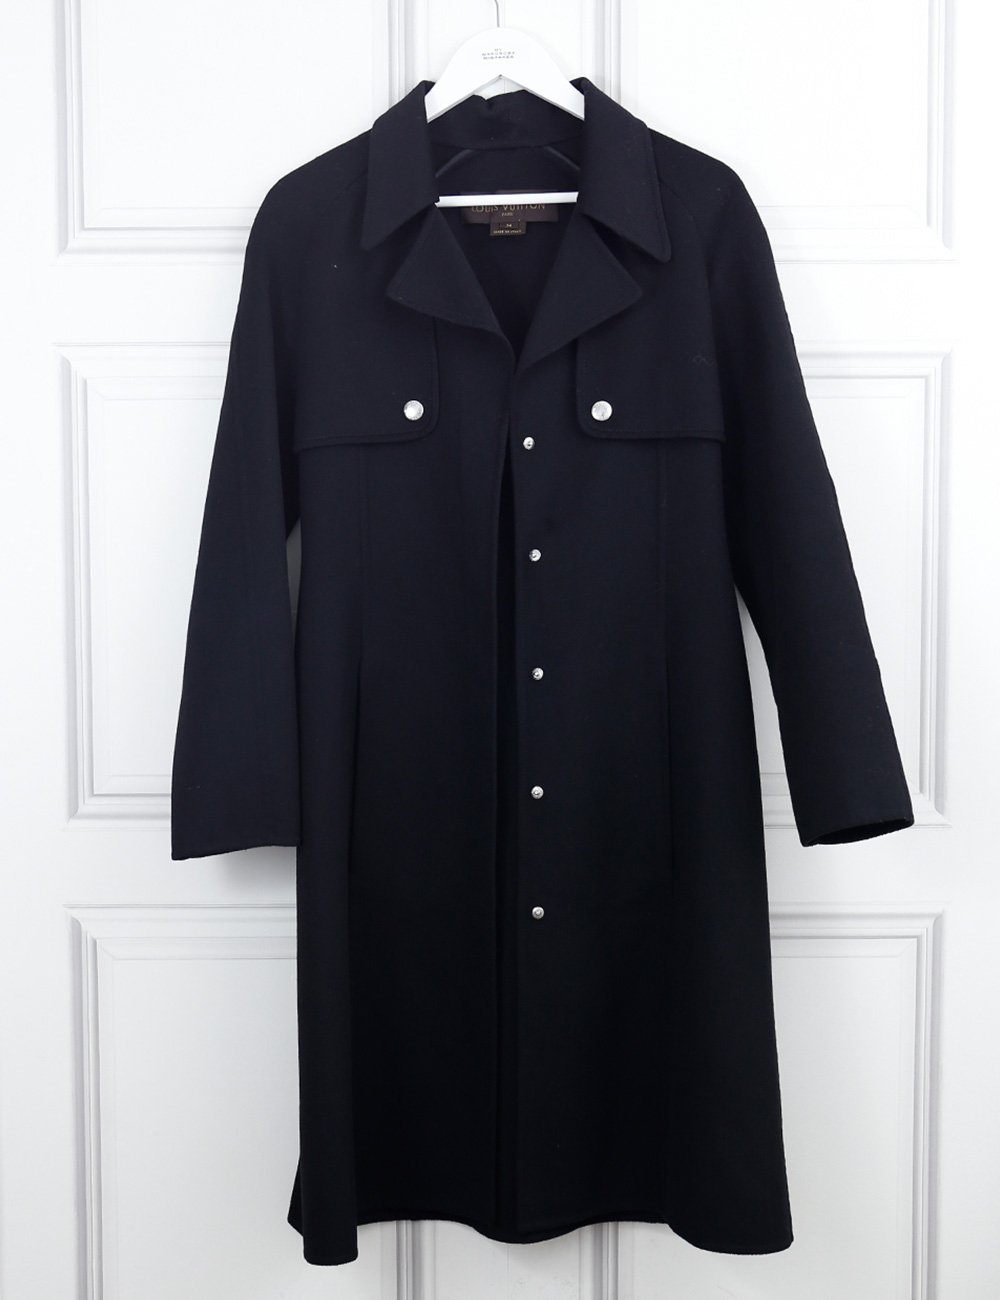 LOUIS VUITTON CLOTHING 8UK-40IT-36FR / Black LOUIS VUITTON Long cashmere coat